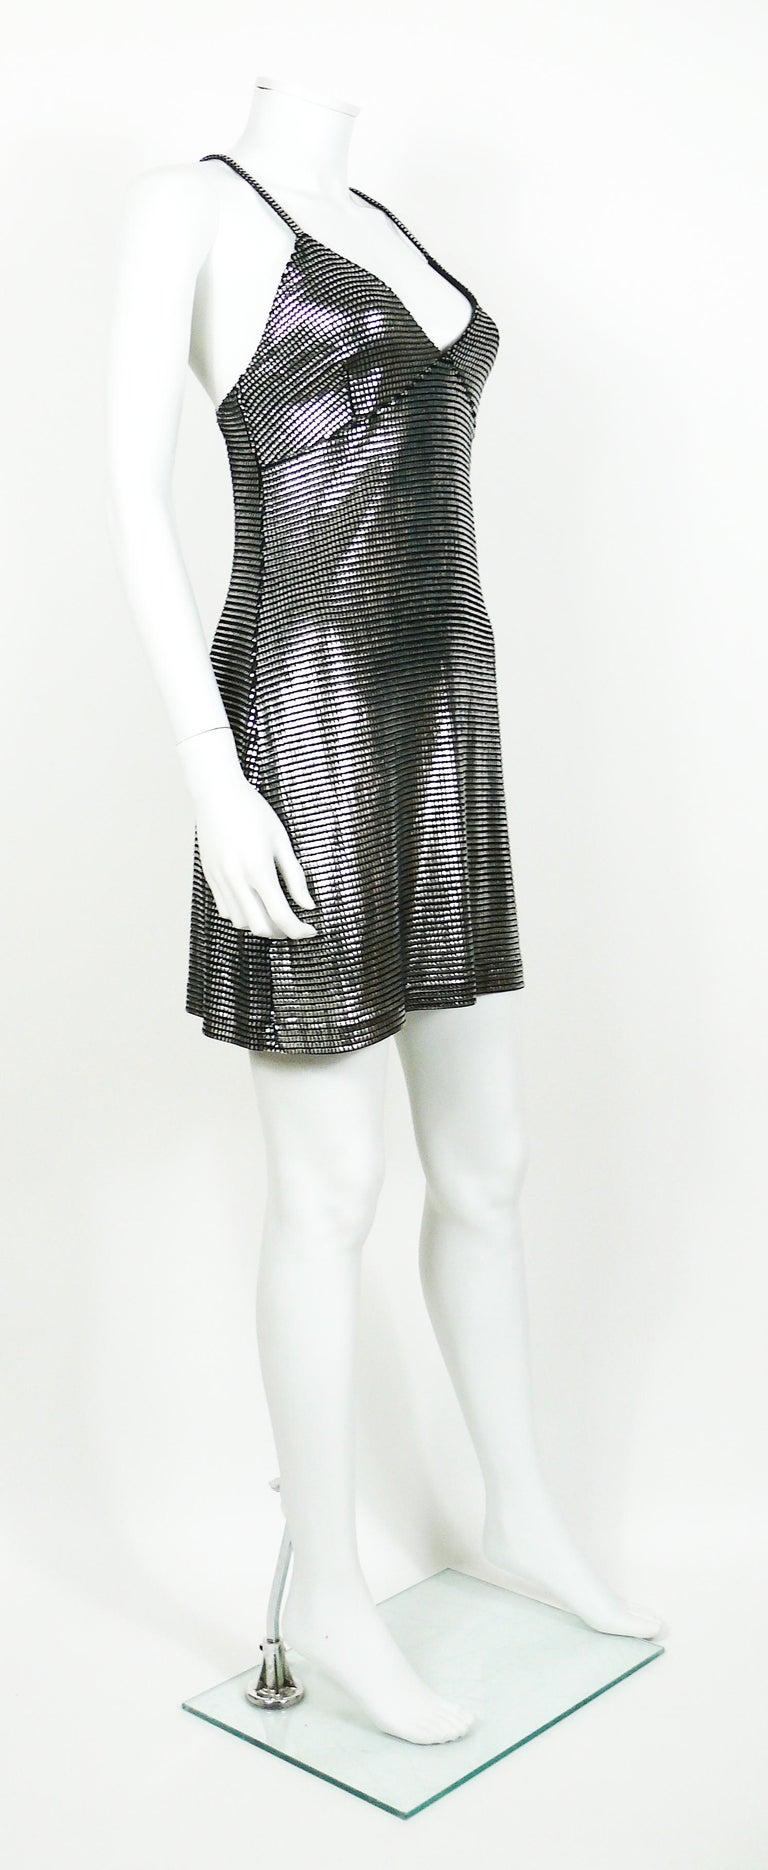 PACO RABANNE sexy silver foil grid mini dress.  Top surface is silver foil printed creating a metallic chain mail effect on a black knit spandex base.  Cross back shoulder straps.  Label reads PACO RABANNE Paris.  Missing size tag. Please double